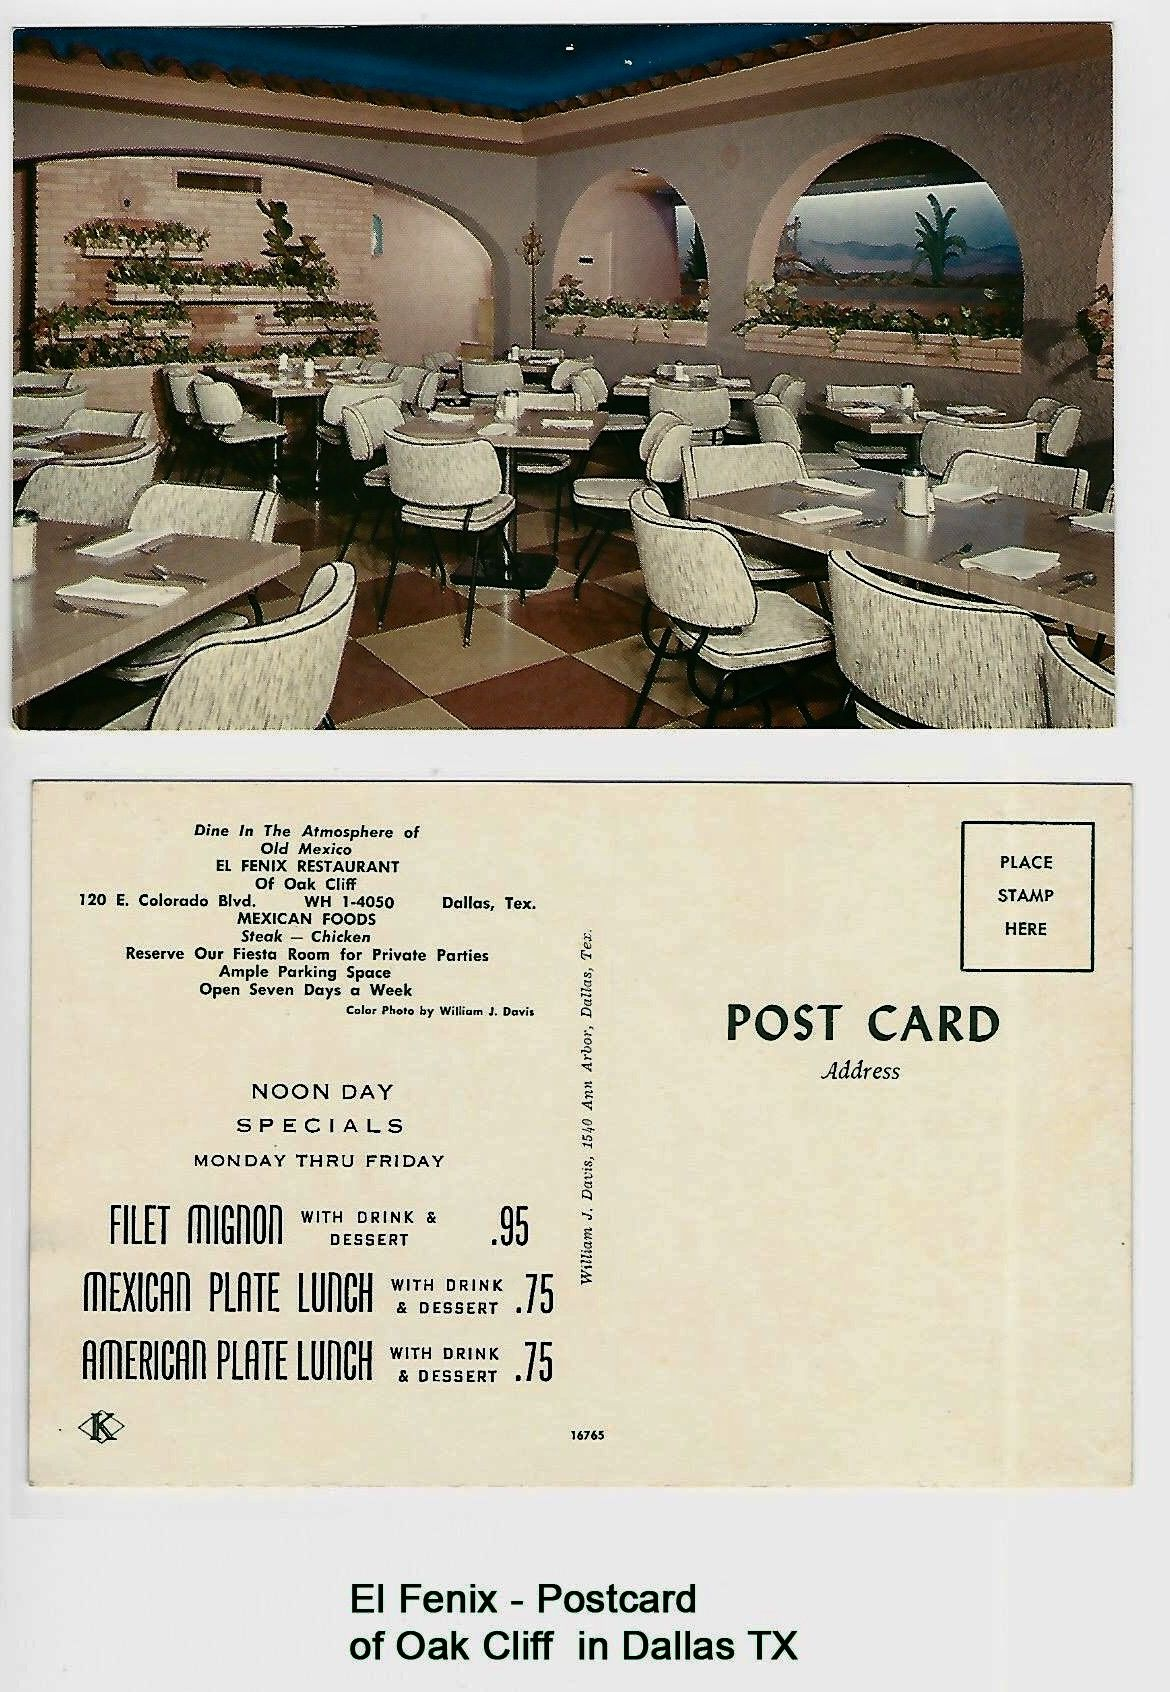 El Fenix, 120 E  Colorado Blvd, Oak Cliff, Dallas, Texas-Postcard